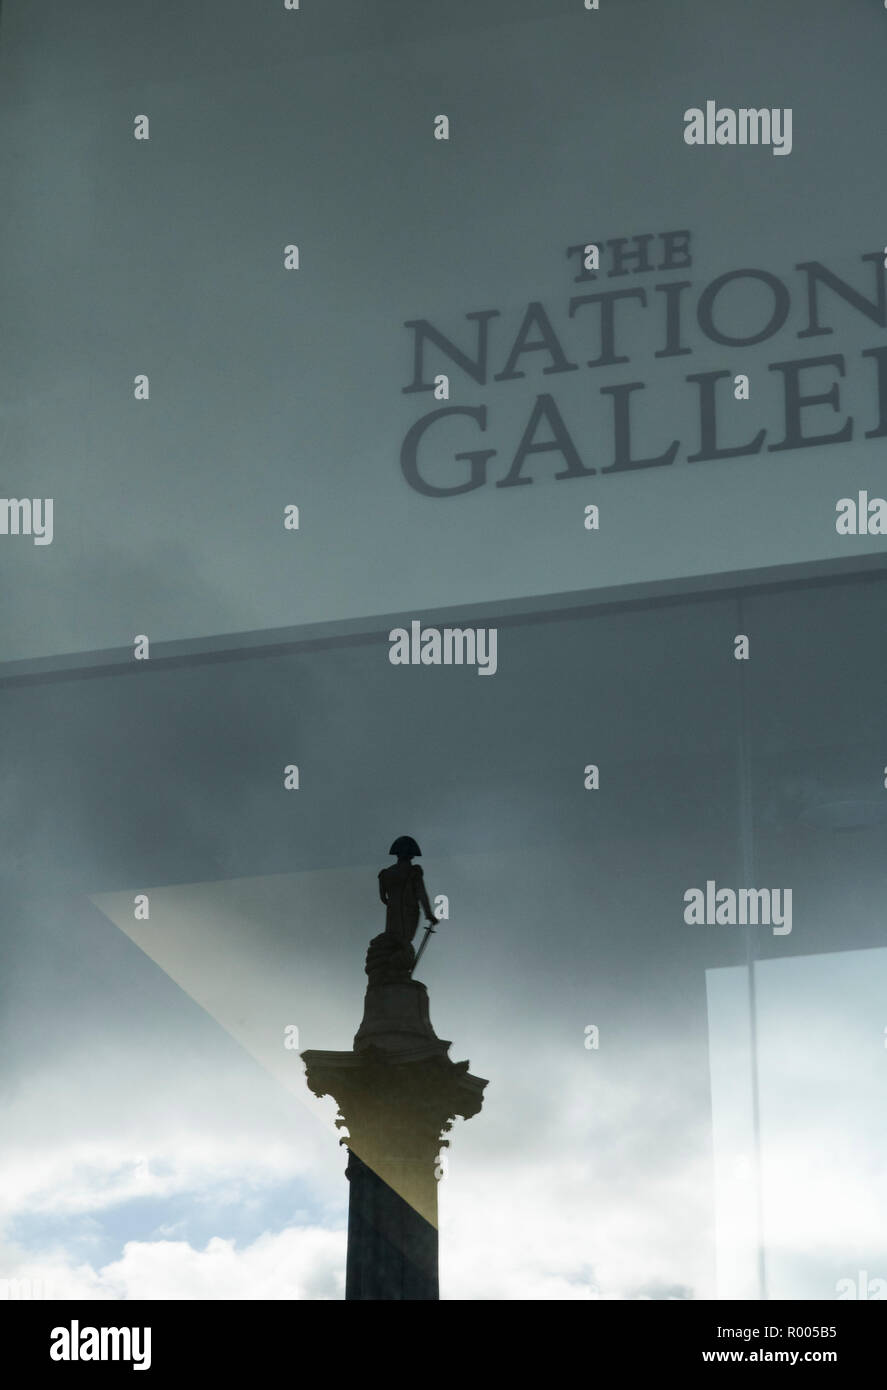 Reflection of Lord Nelson, The National Gallery, Trafalgar Square, London Stock Photo